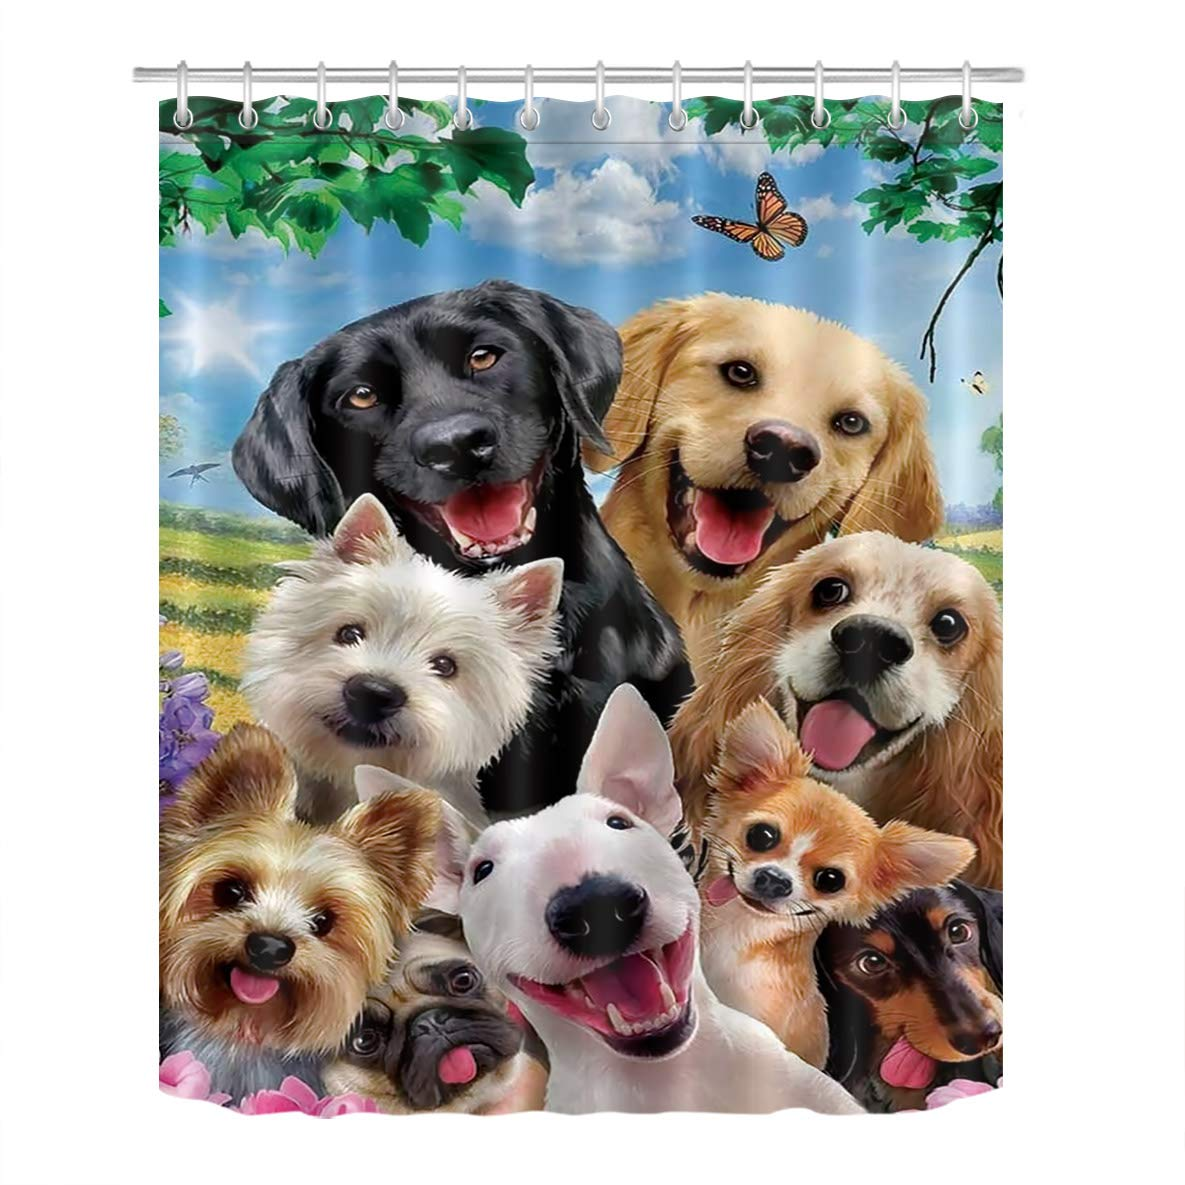 LB Dogs Shower Curtain, 3D Digital Printing Lovely Puppies Waterproof Polyester Fabric Bathroom Curtain with 12 Hooks,60x72 Inch